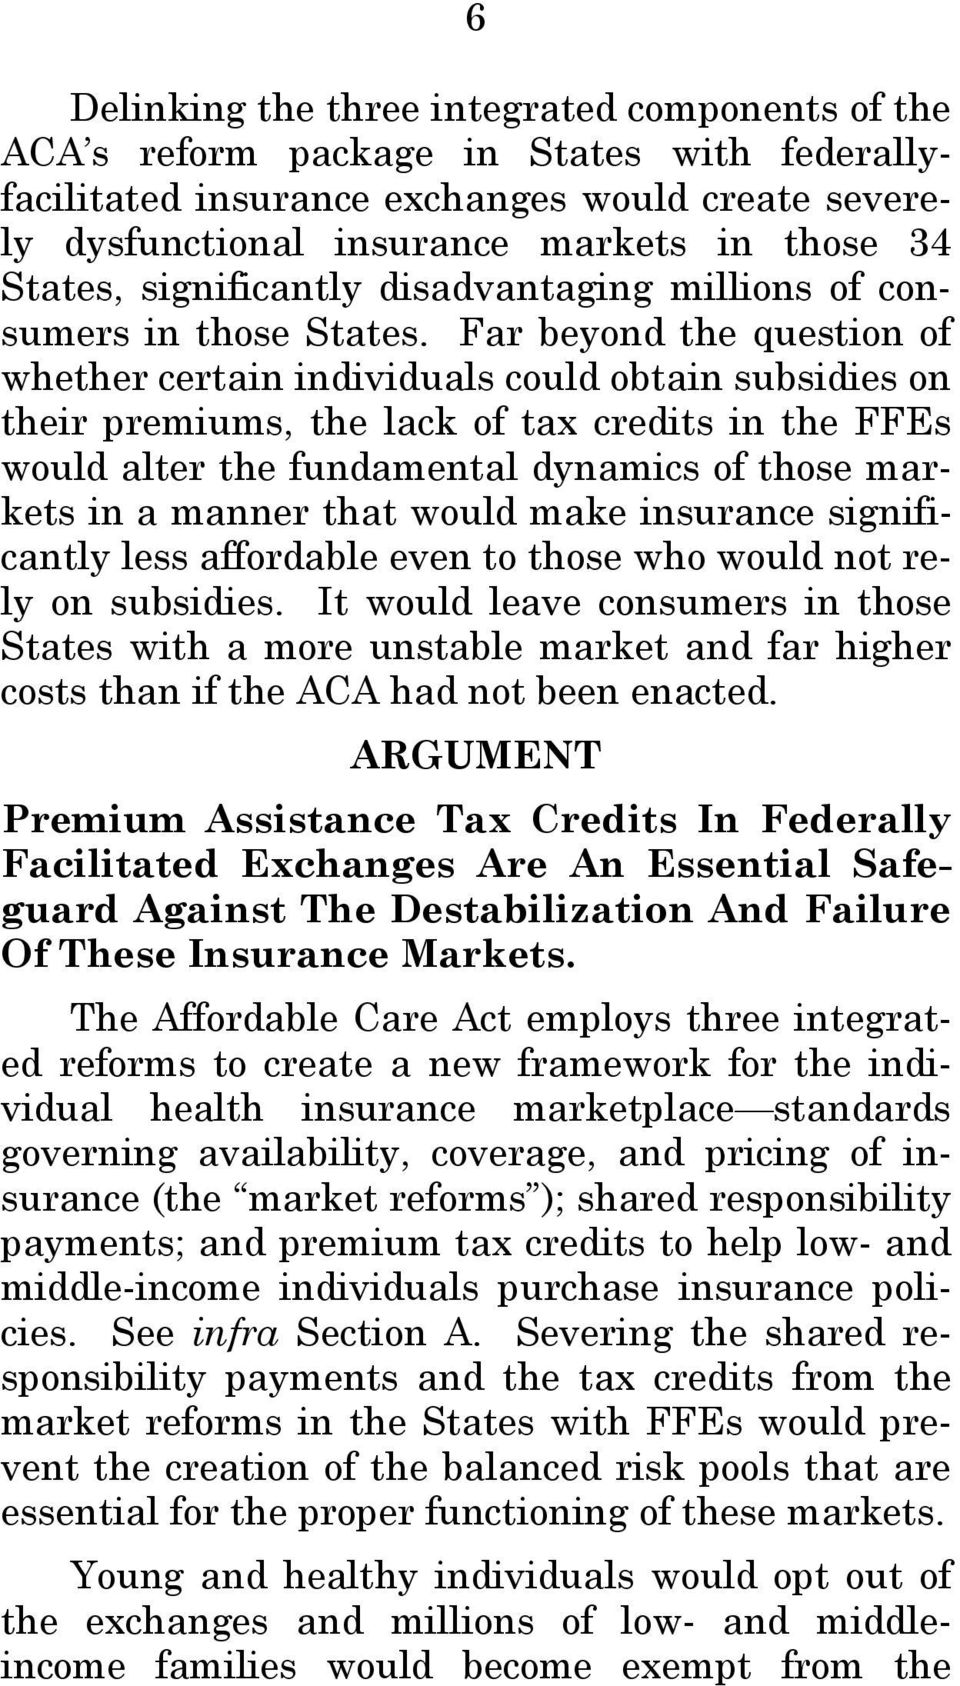 Far beyond the question of whether certain individuals could obtain subsidies on their premiums, the lack of tax credits in the FFEs would alter the fundamental dynamics of those markets in a manner